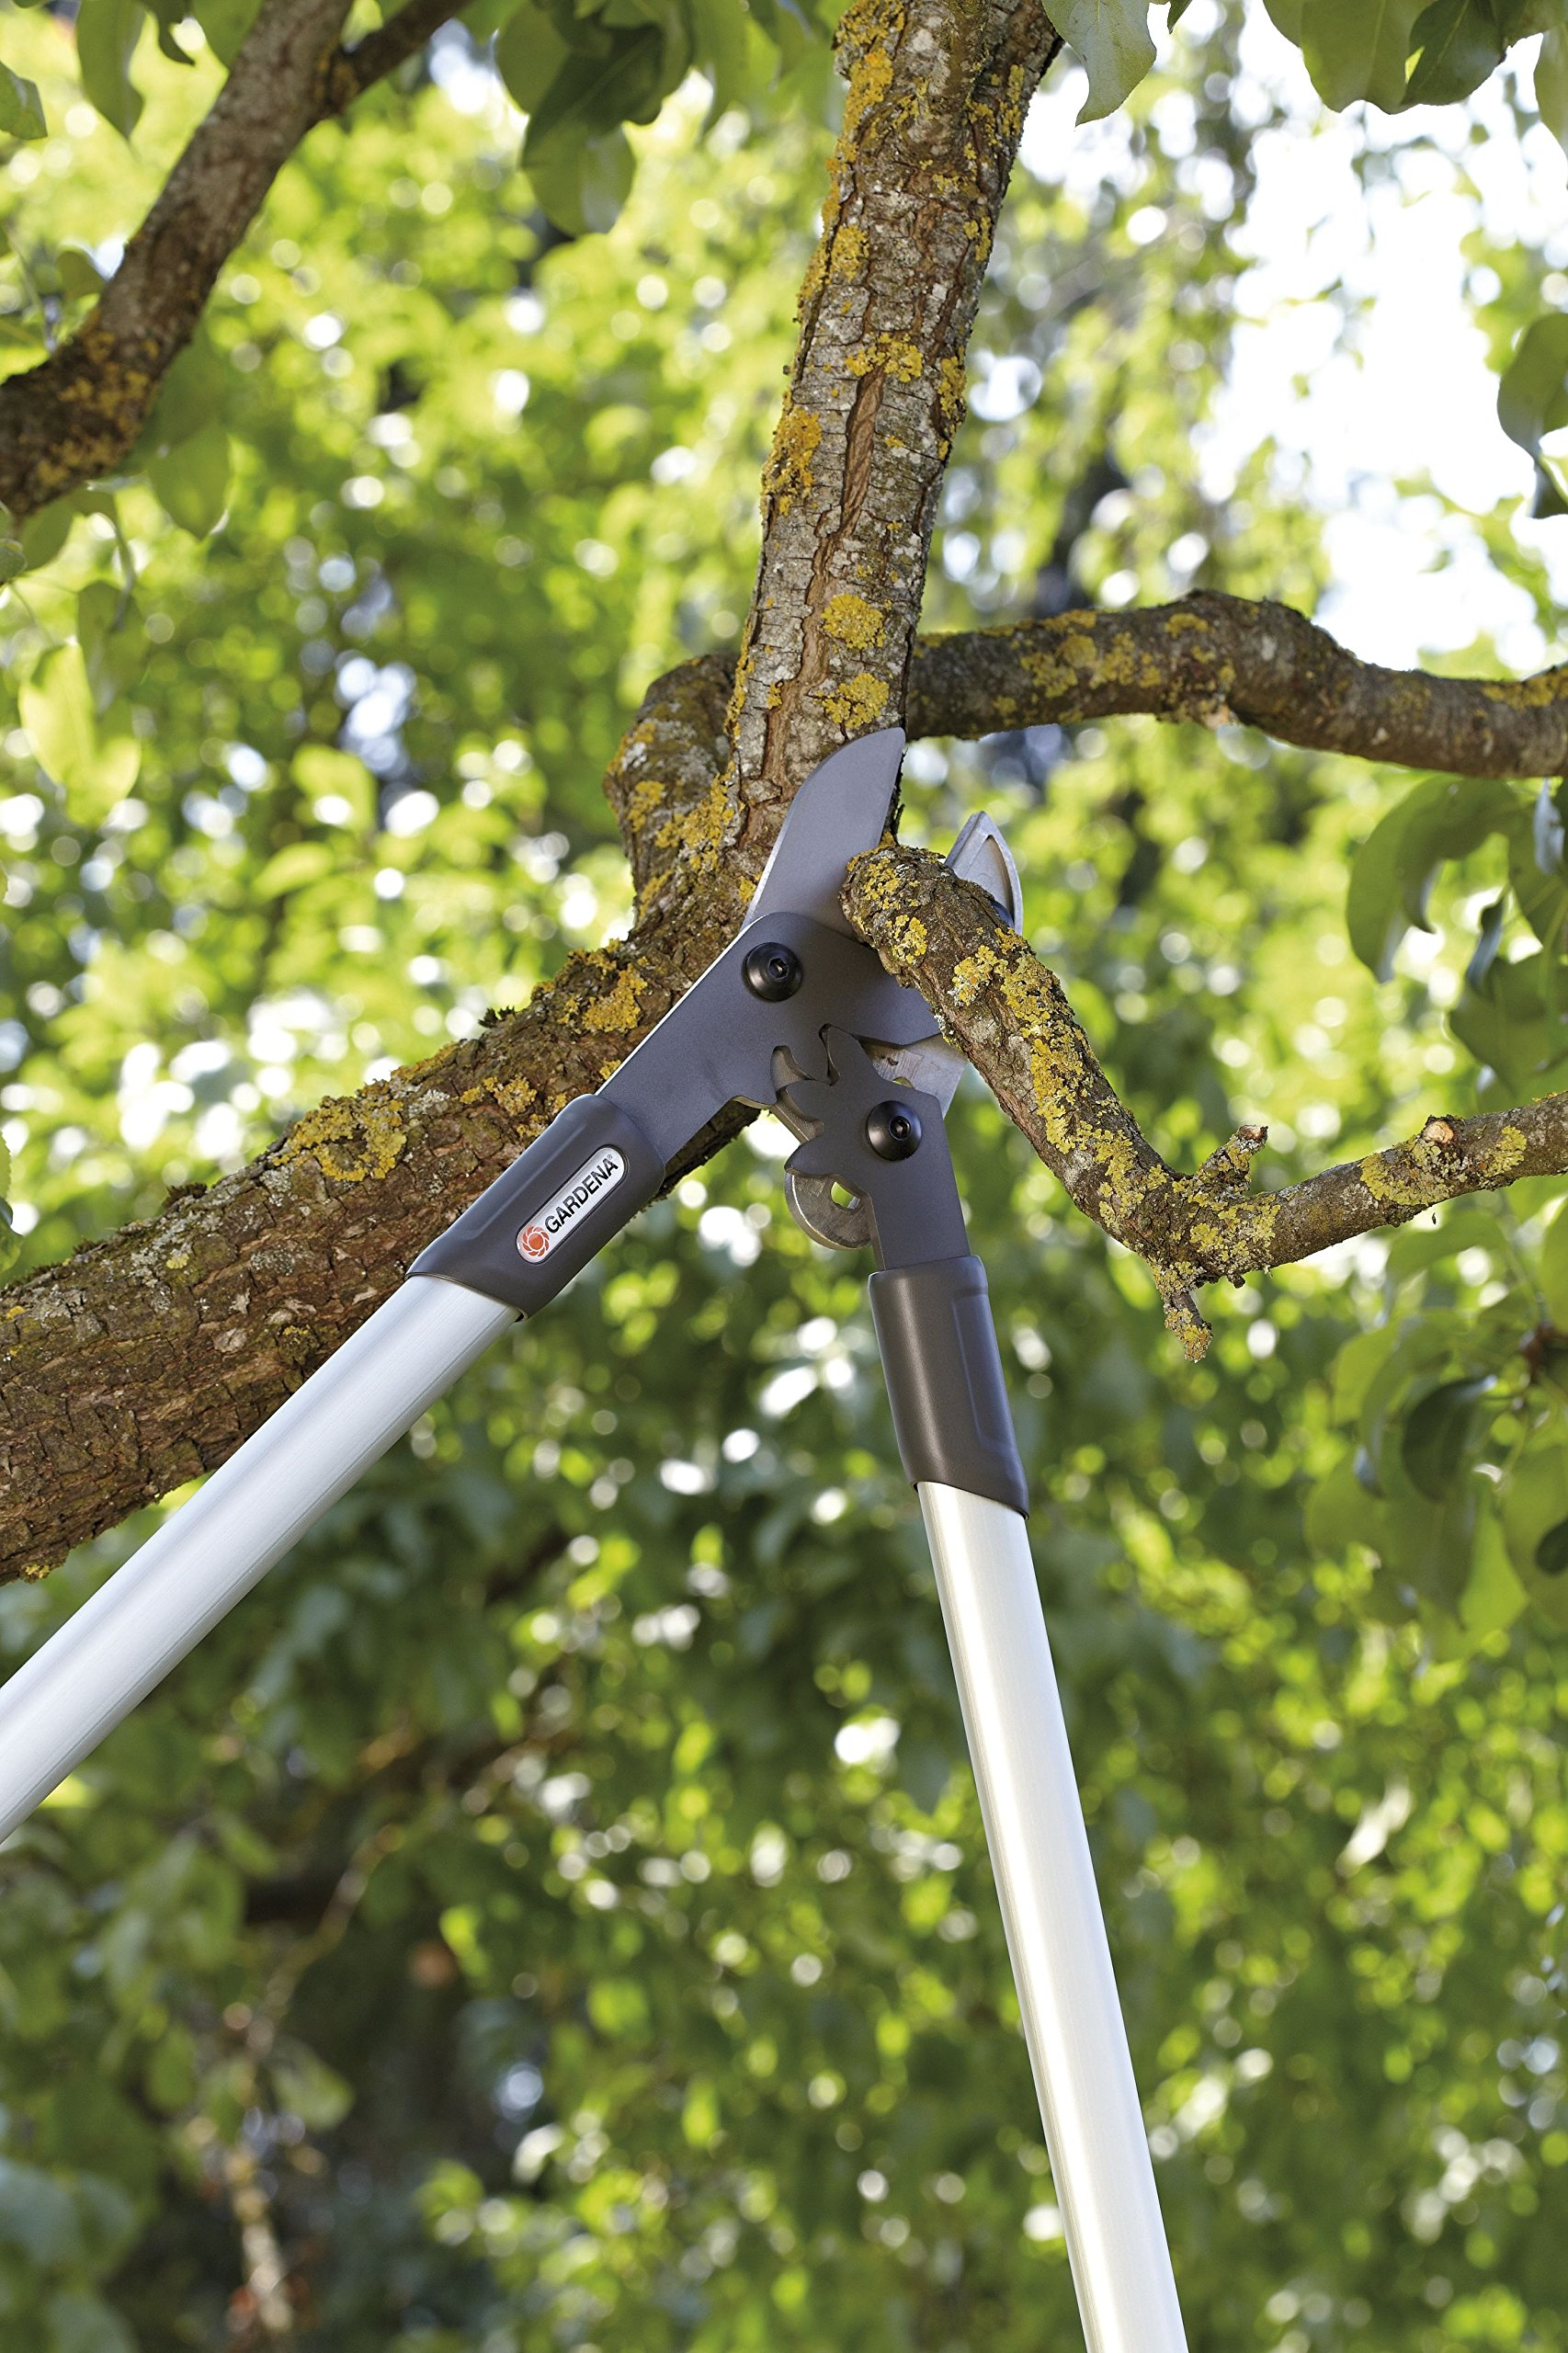 GARDENA 760A Comfort Pruning Loppers